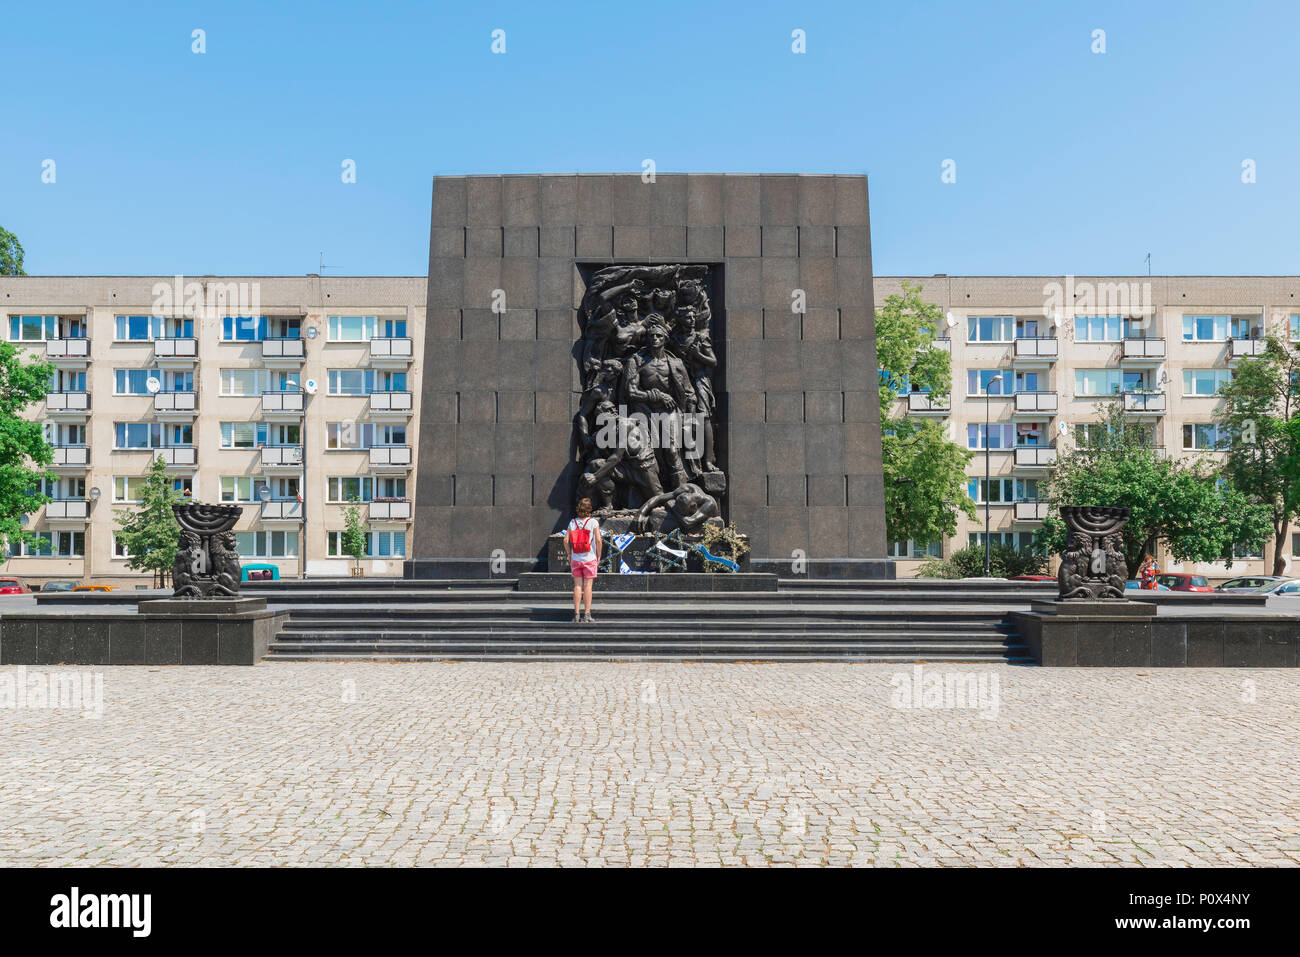 A young woman visits the Ghetto Heroes Monument which commemorates the Warsaw Jewish Ghetto Uprising of 1943, Poland. - Stock Image